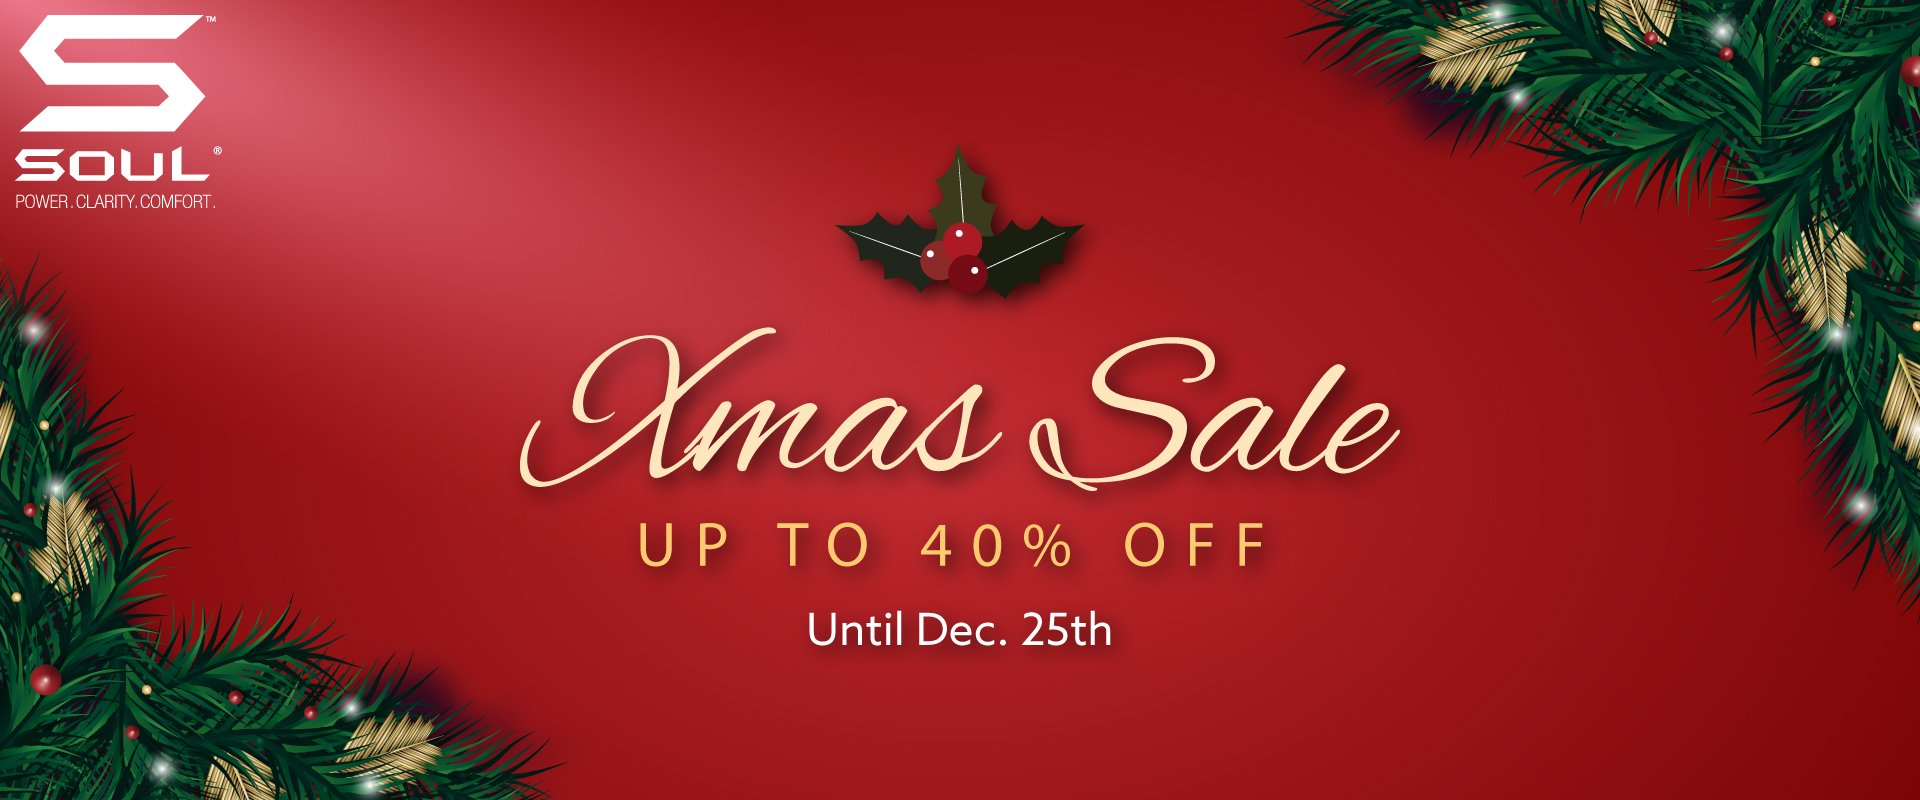 EARLY CHRISTMAS SHOPPING FOR YOUR LOVED ONES. ENJOY UP TO 70% OFF!